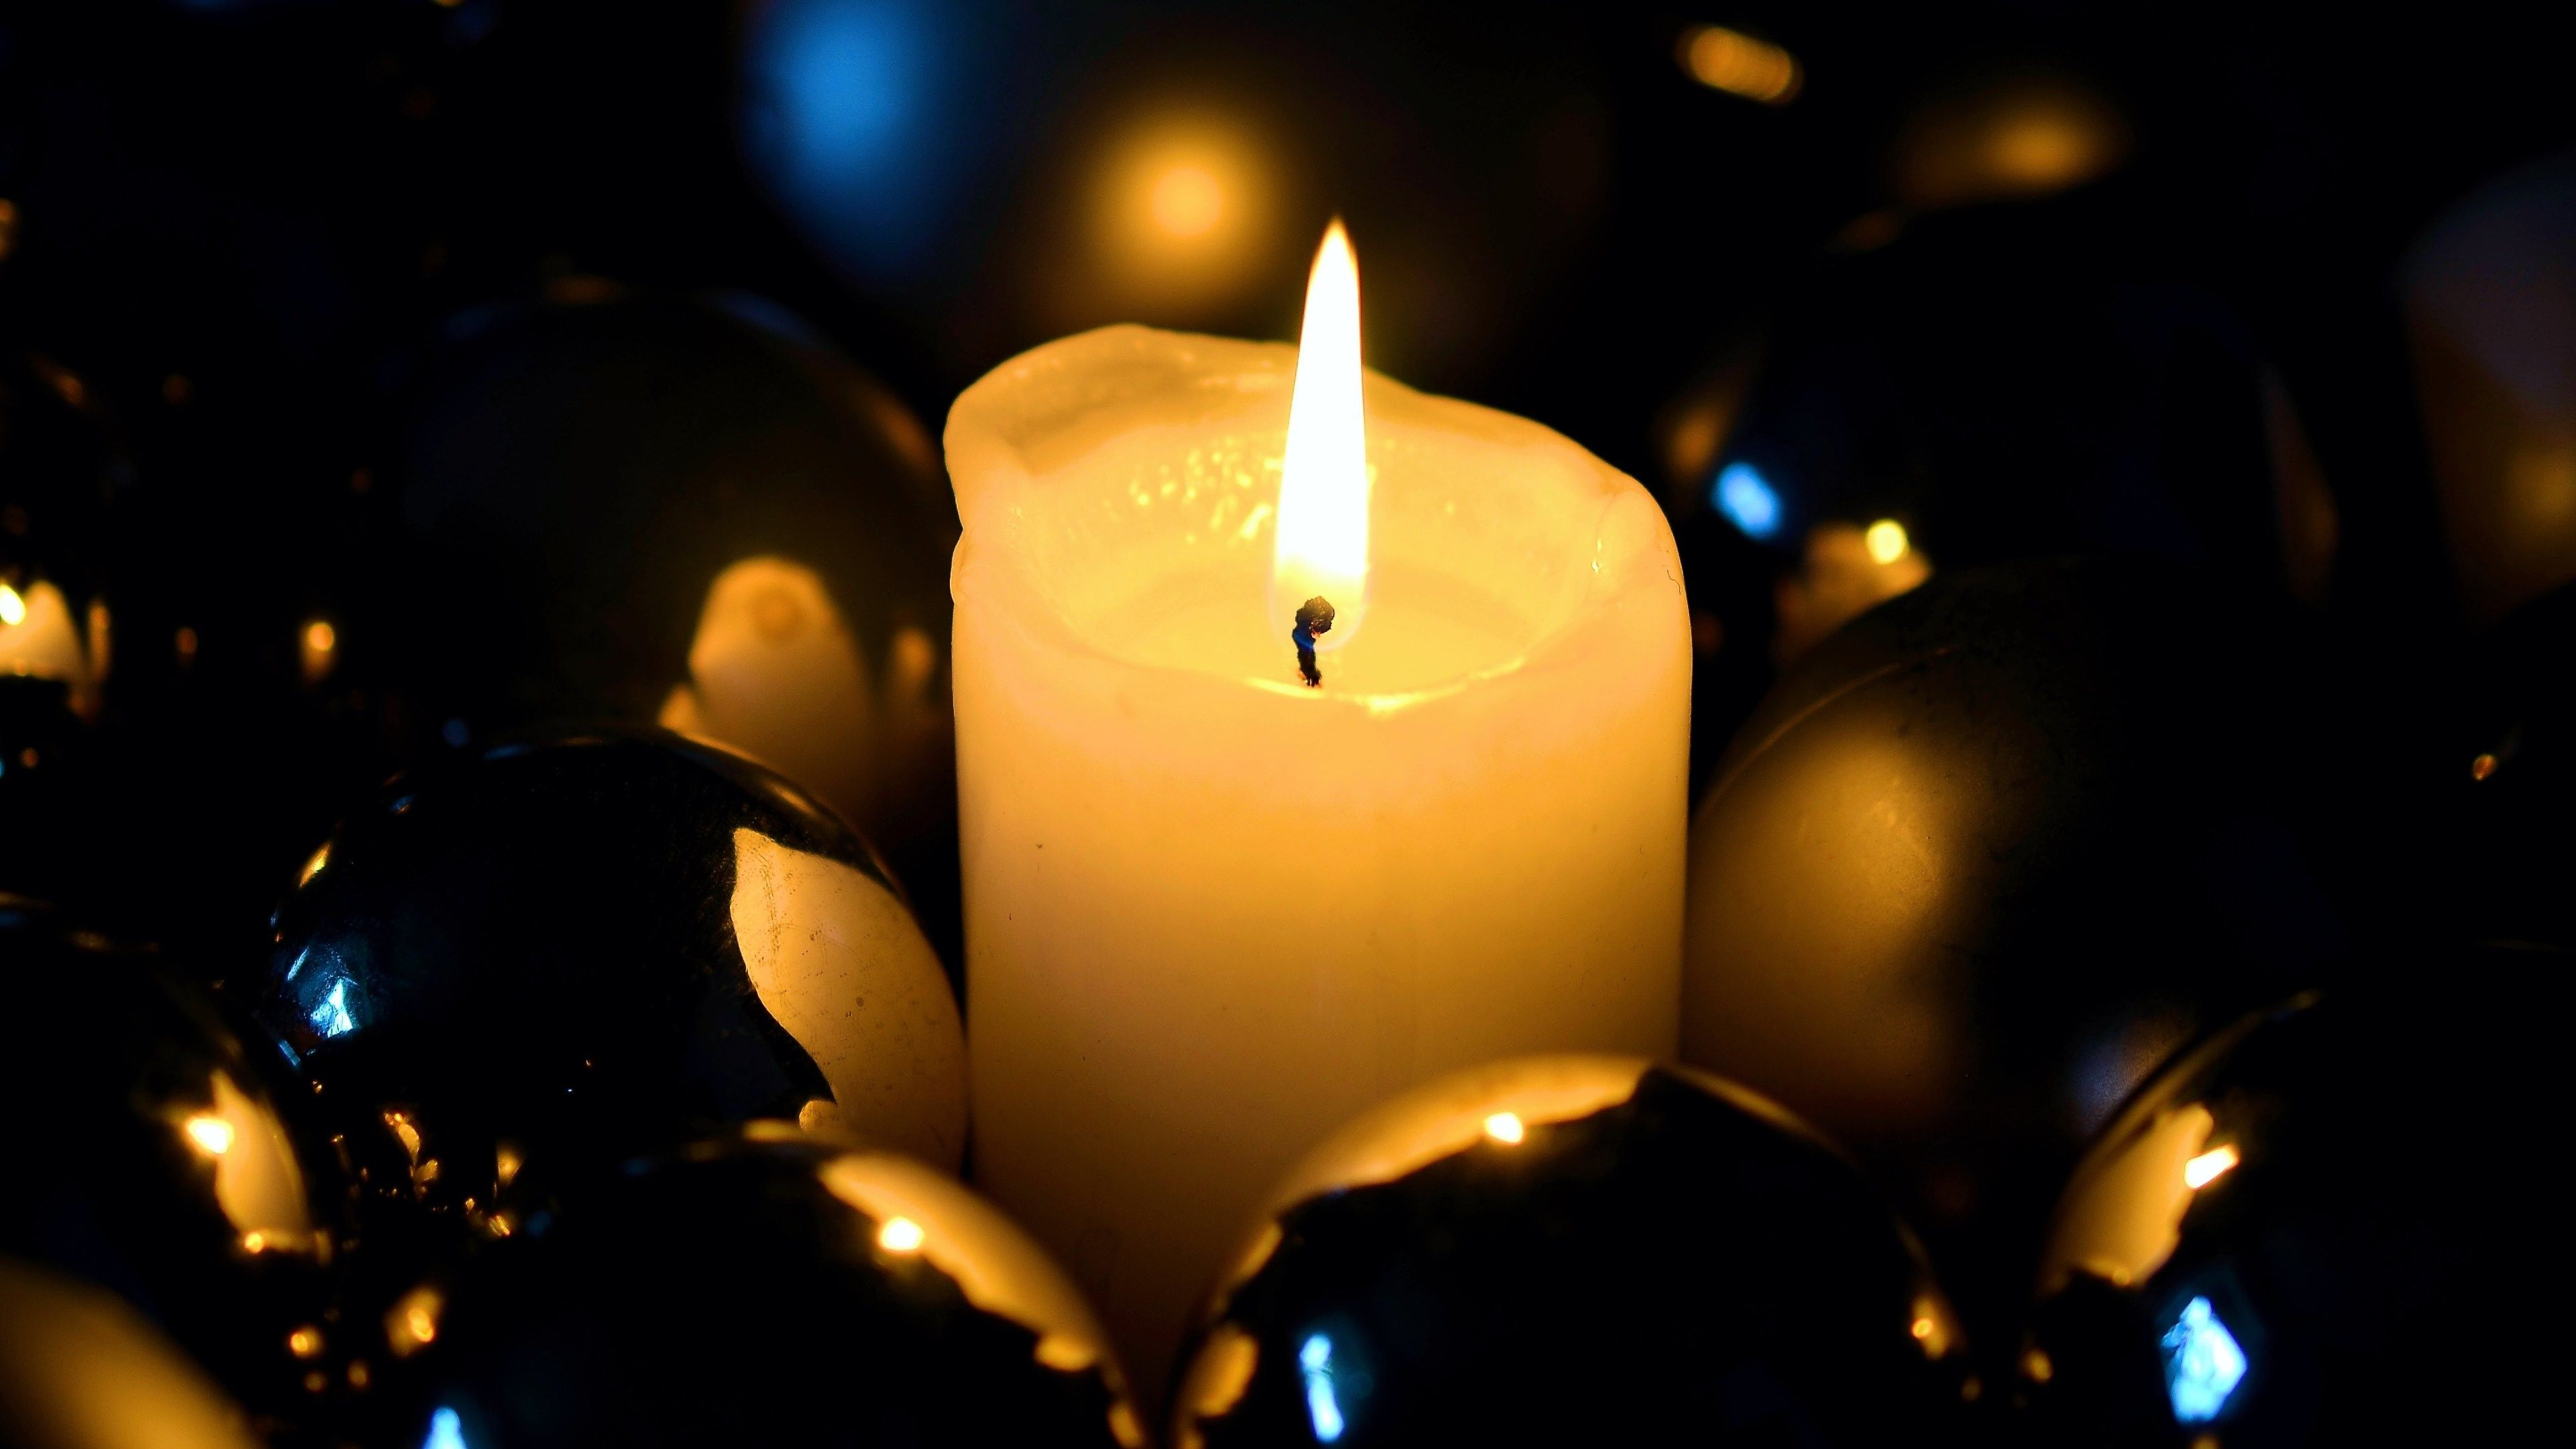 4k candle hd wallpaper (3840x2160) | pinterest | hd wallpaper